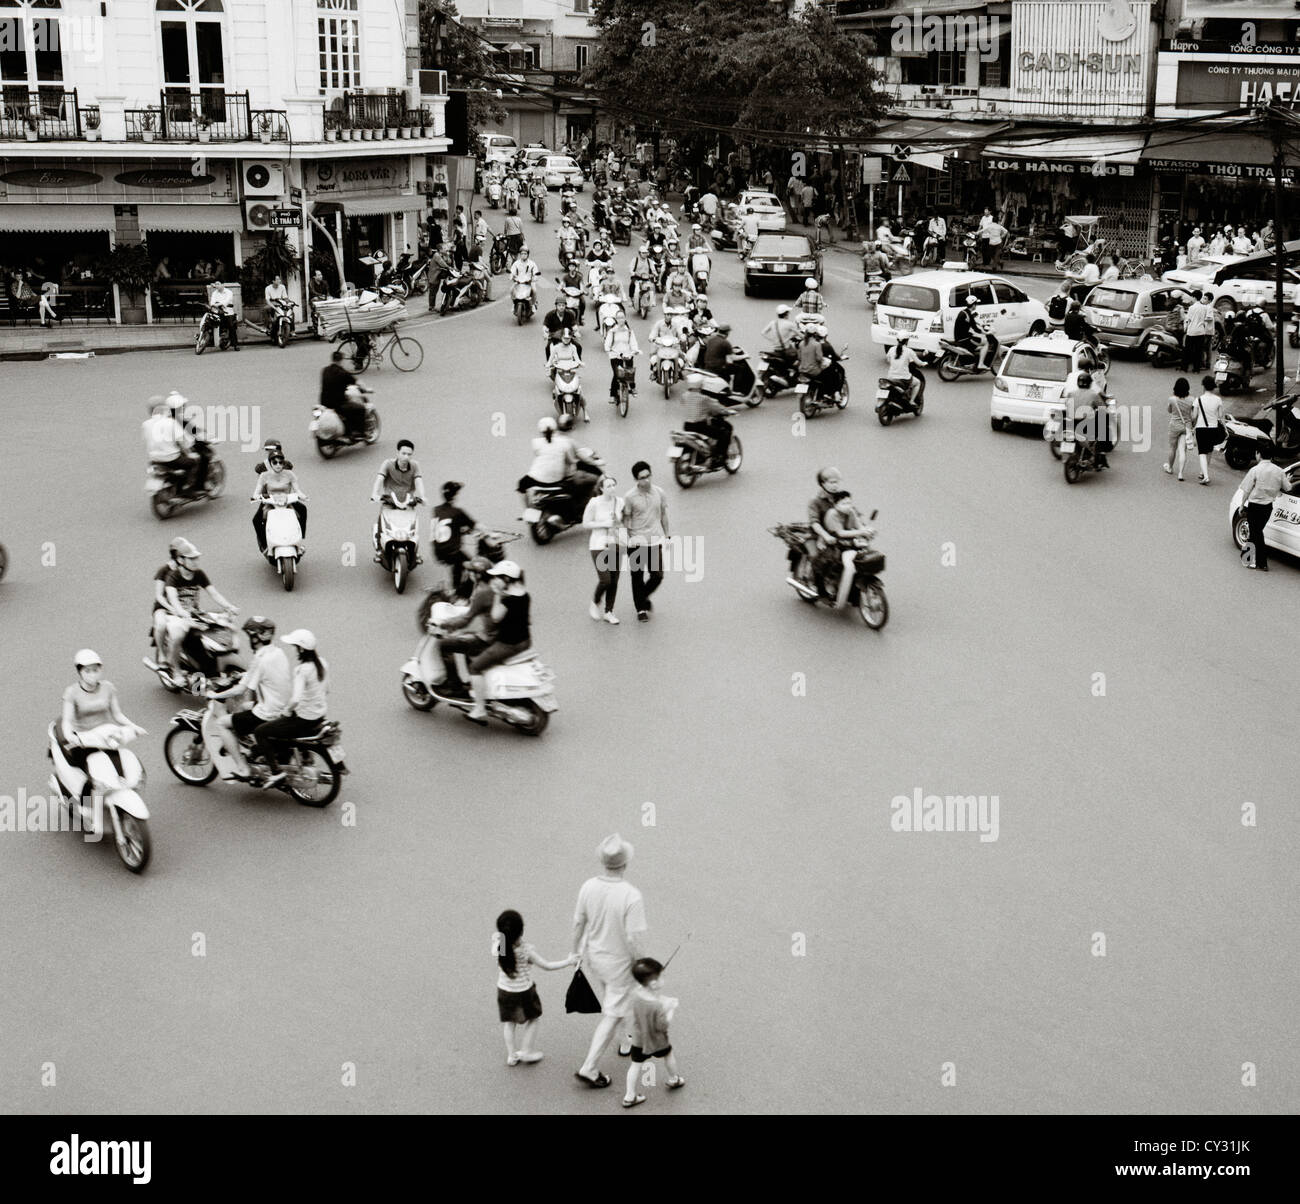 Road and street traffic in the Old City of Hanoi in Vietnam in Far East Southeast Asia. Modern Jam Congestion Scooter - Stock Image